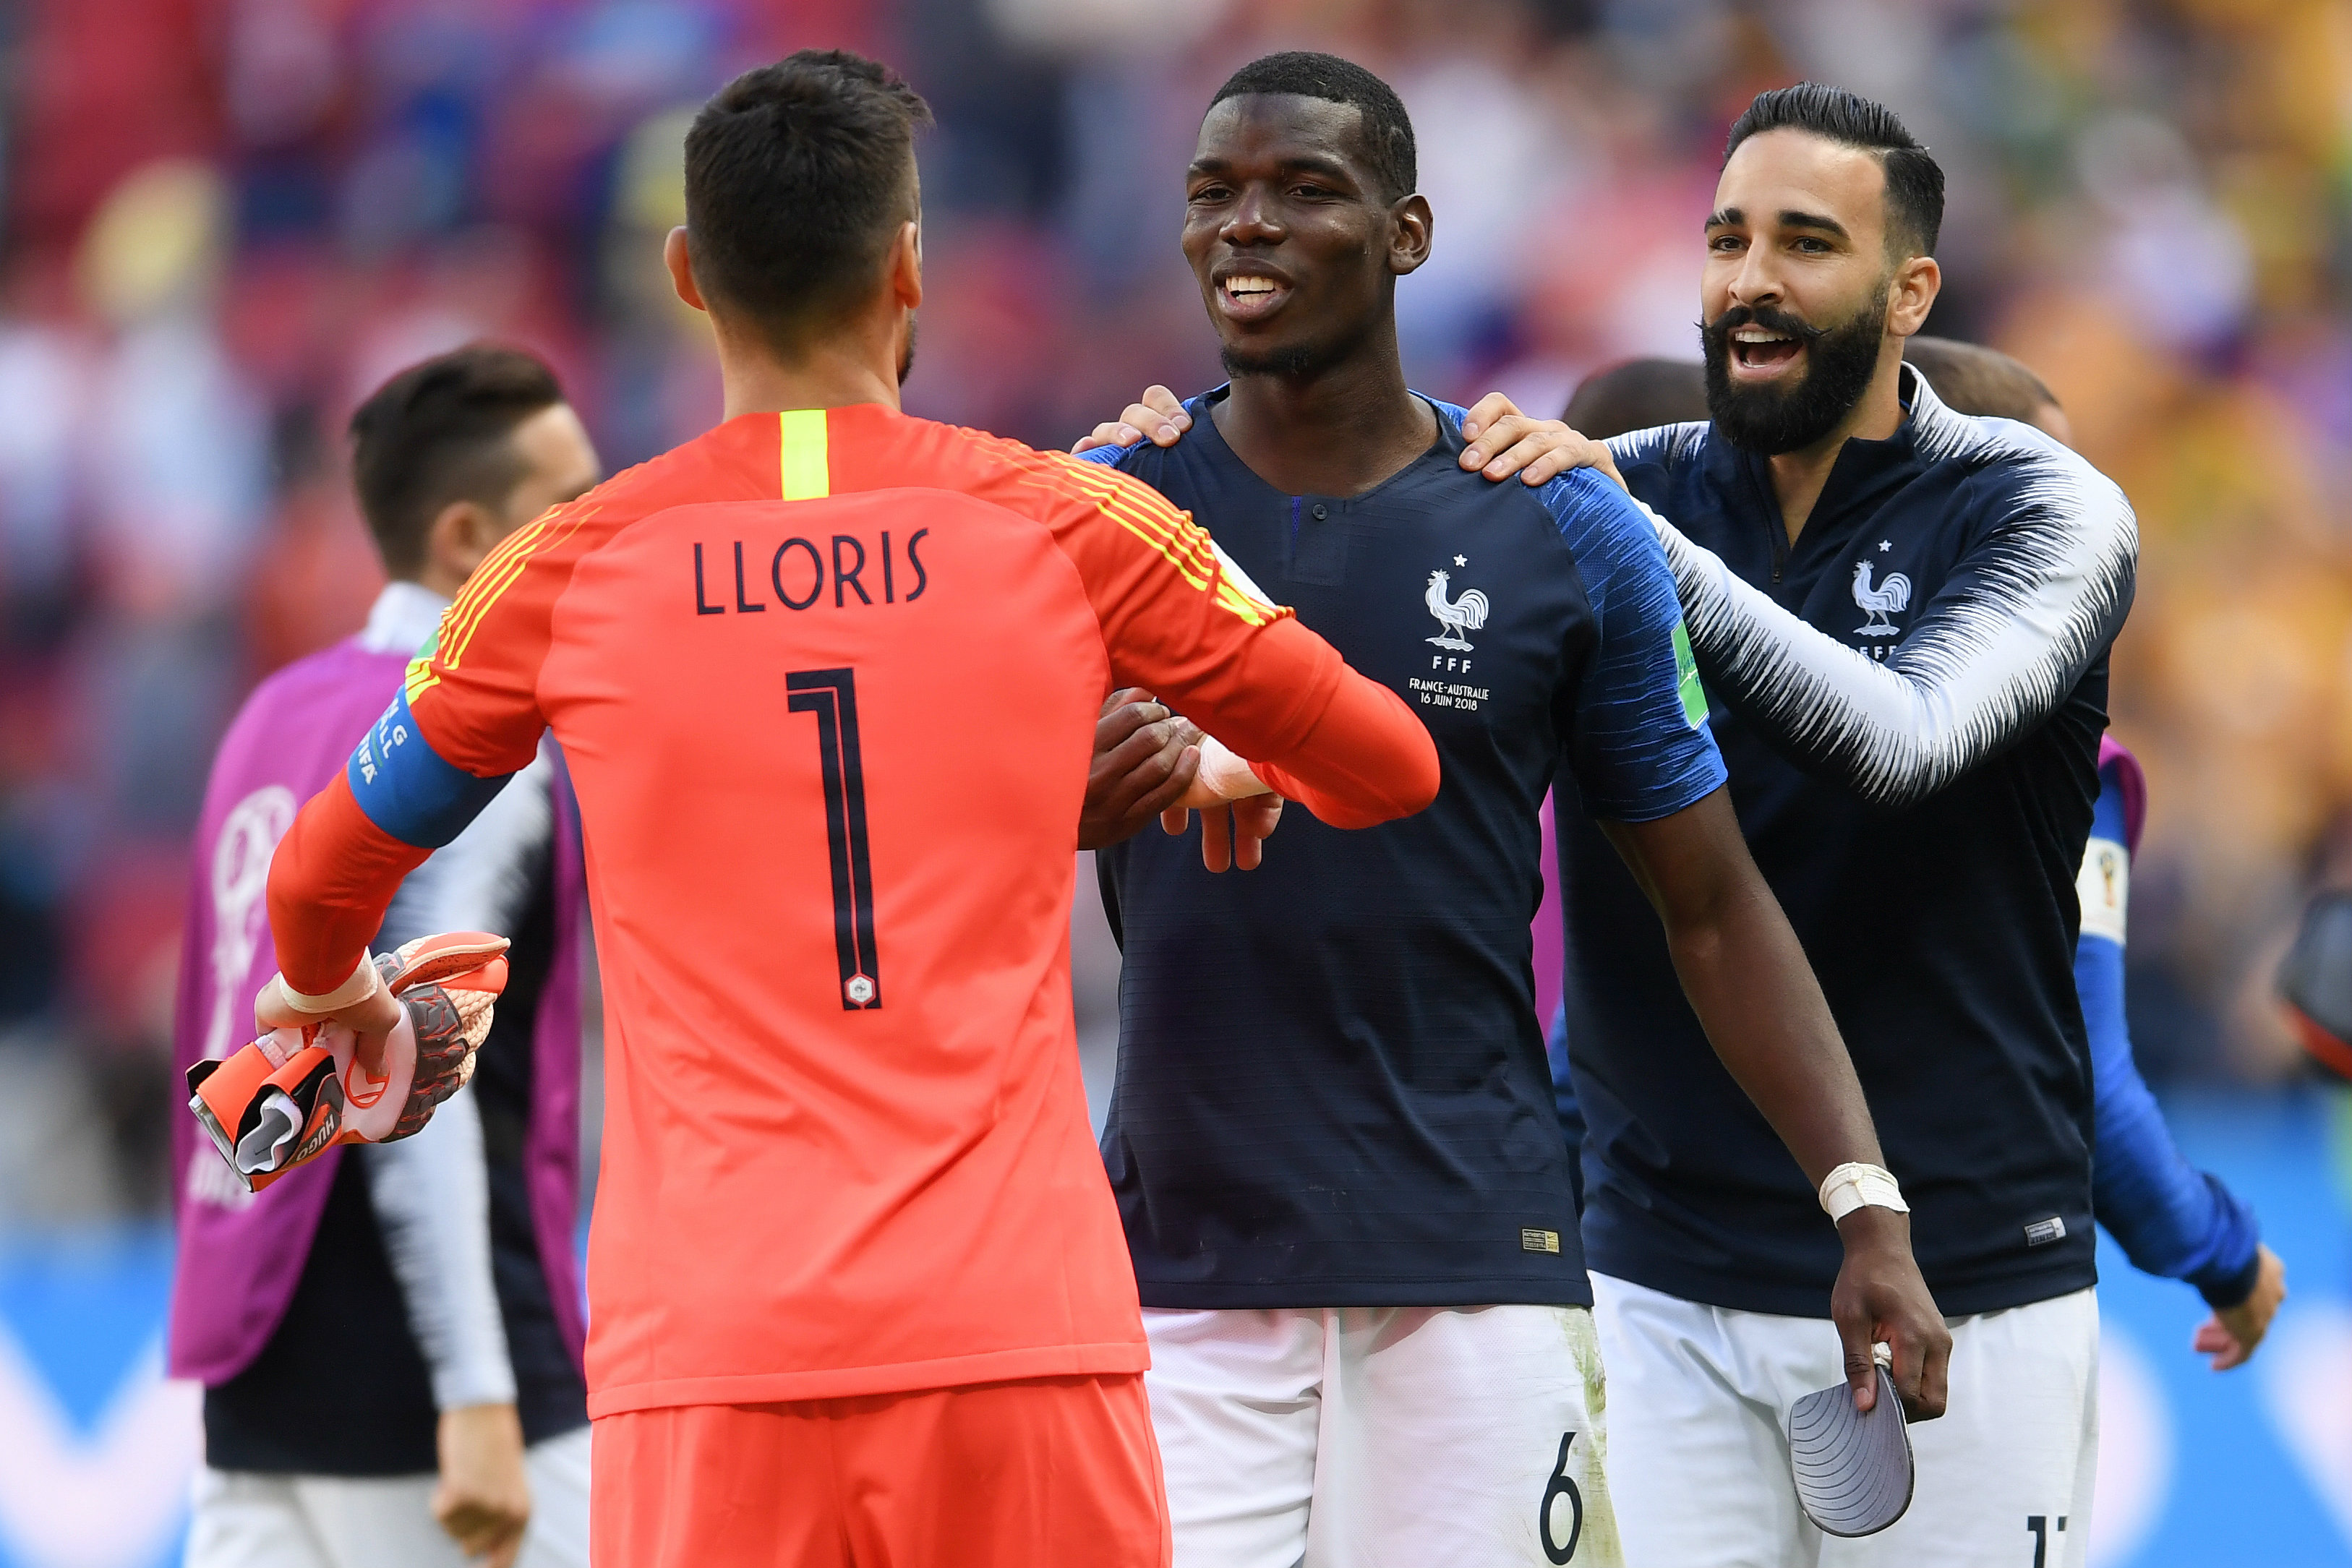 Pogba and his France teammates were all smiles after the win over the Socceroos.